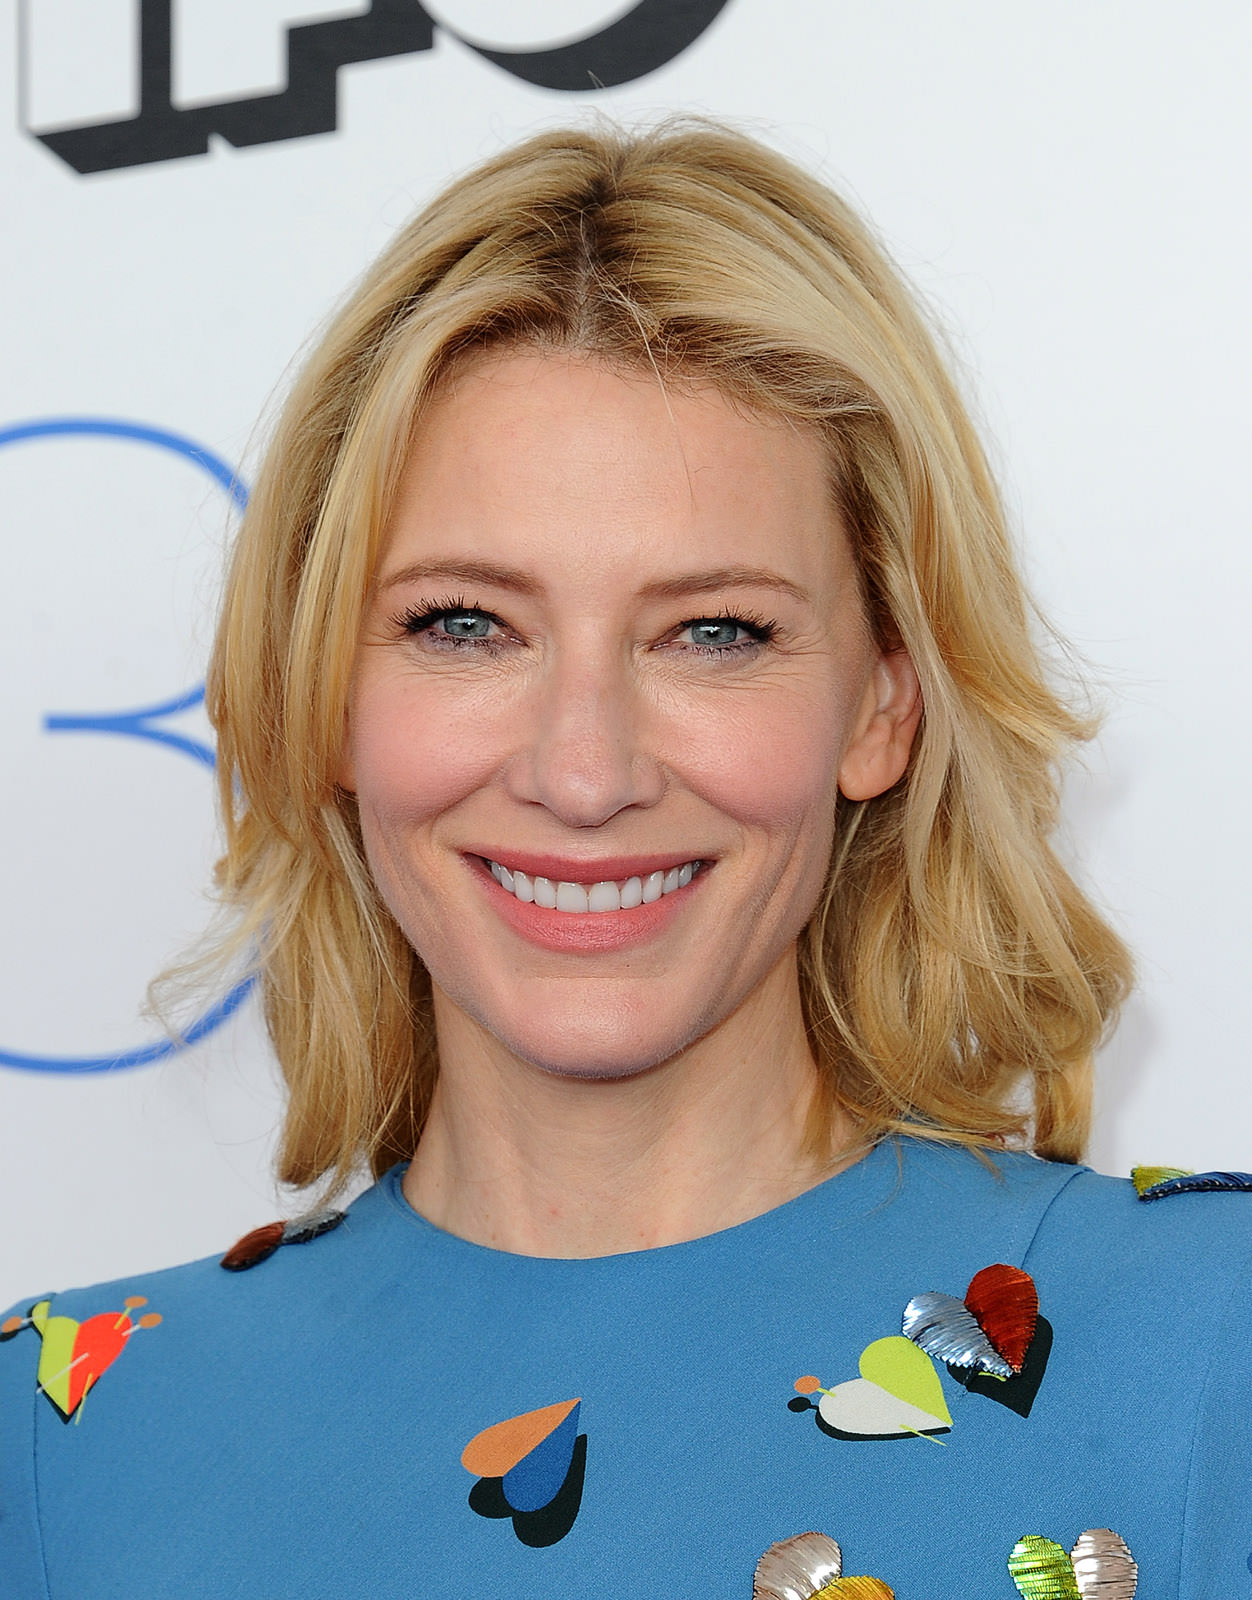 Cate Blanchett Photo Gallery